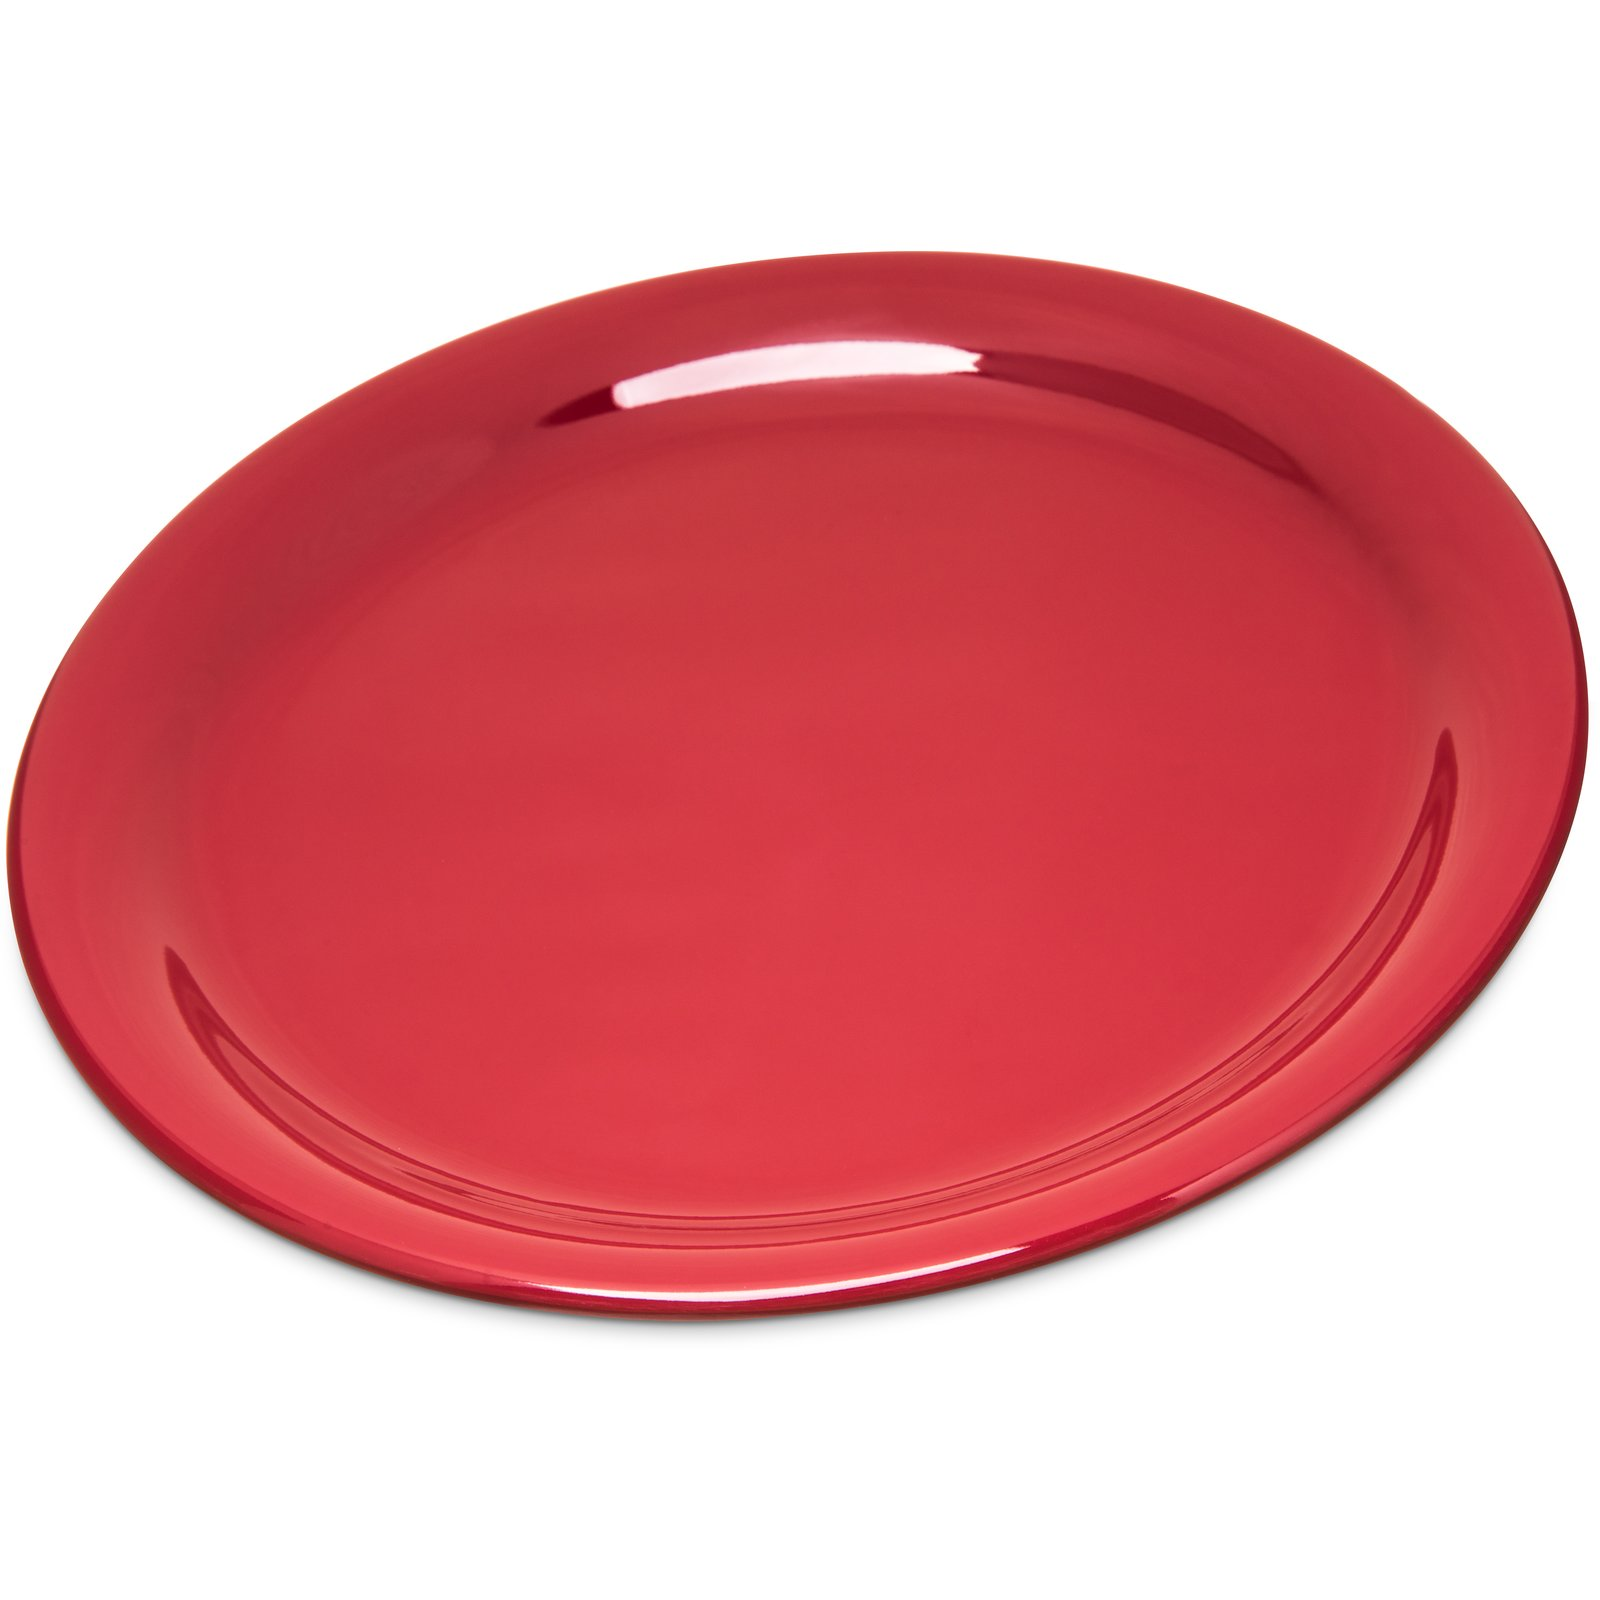 4300458 - Durus® Melamine Narrow Rim Dinner Plate 9\  - Roma Red  sc 1 st  Carlisle FoodService Products & 4300458 - Durus® Melamine Narrow Rim Dinner Plate 9\